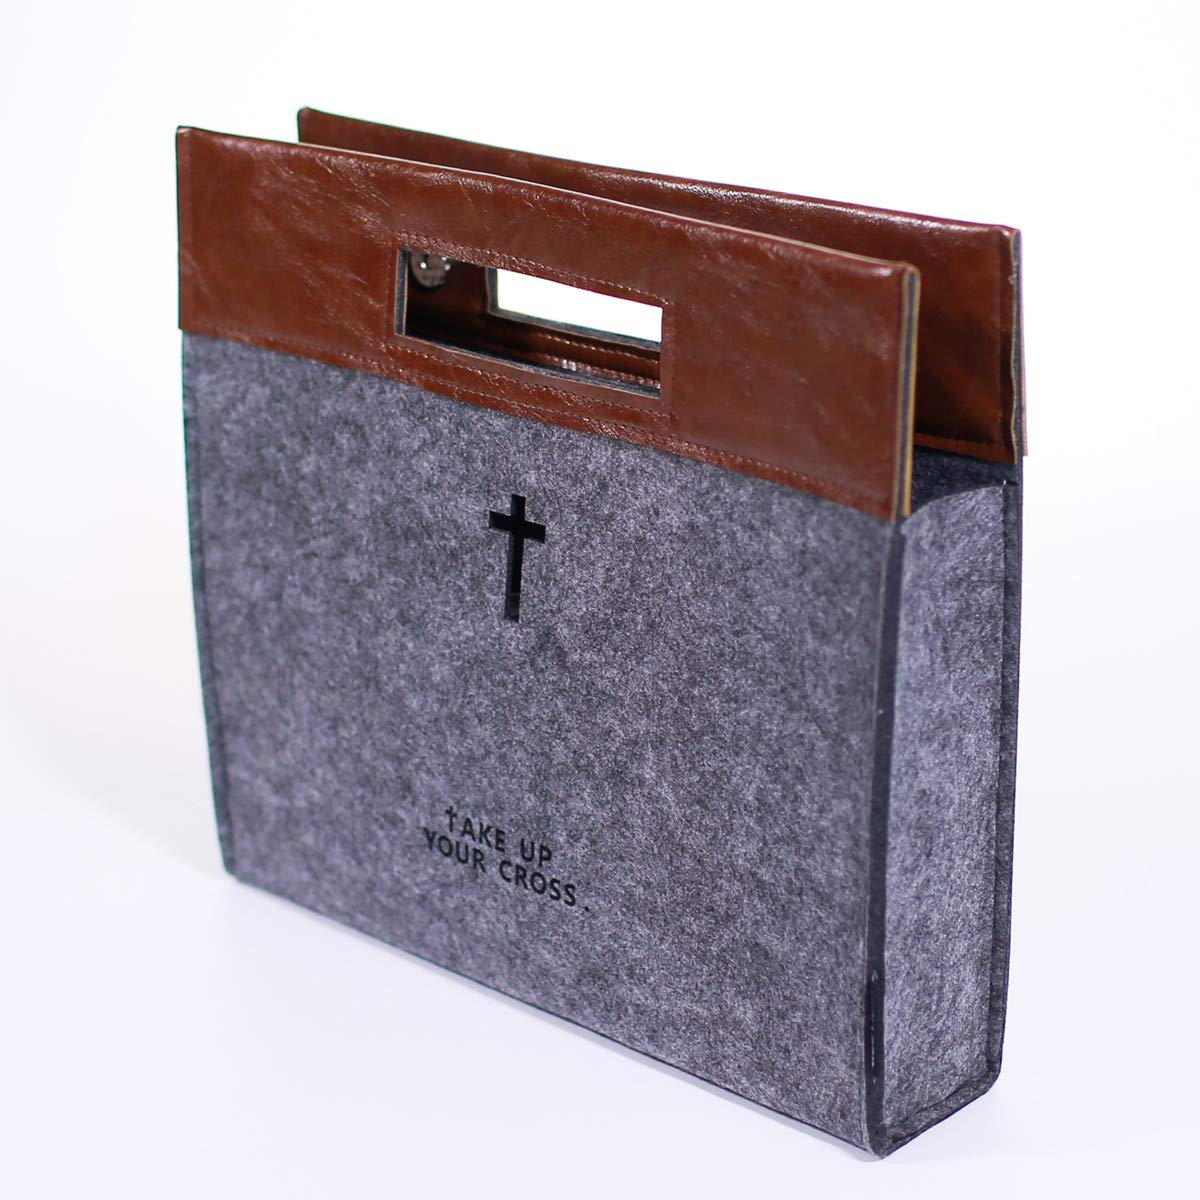 Bible Carrying Case Felt Bible Cover for Men Church Tote Bag with Zipper Roomy Bible Study Case, Christian Gift for Week Deals